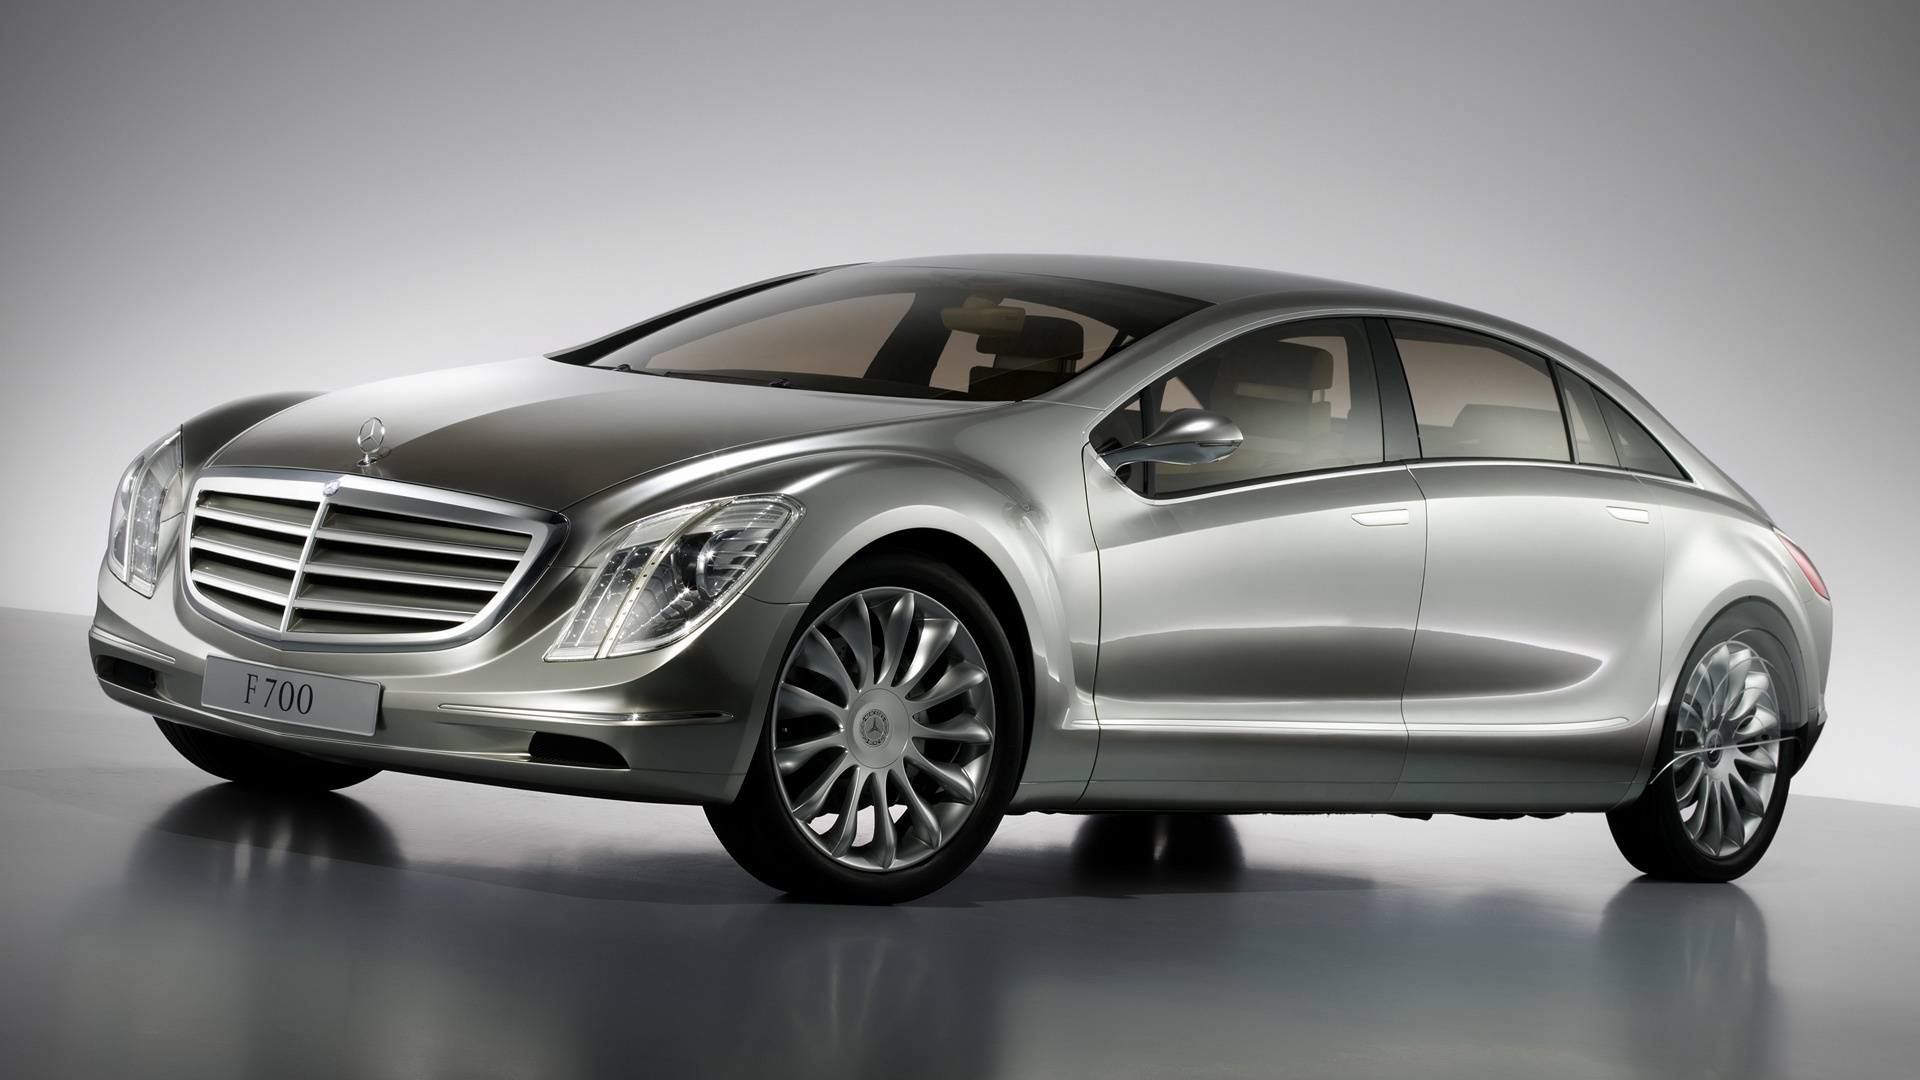 Mercedes Benz F 700 2007 Wallpapers And Hd Images Car